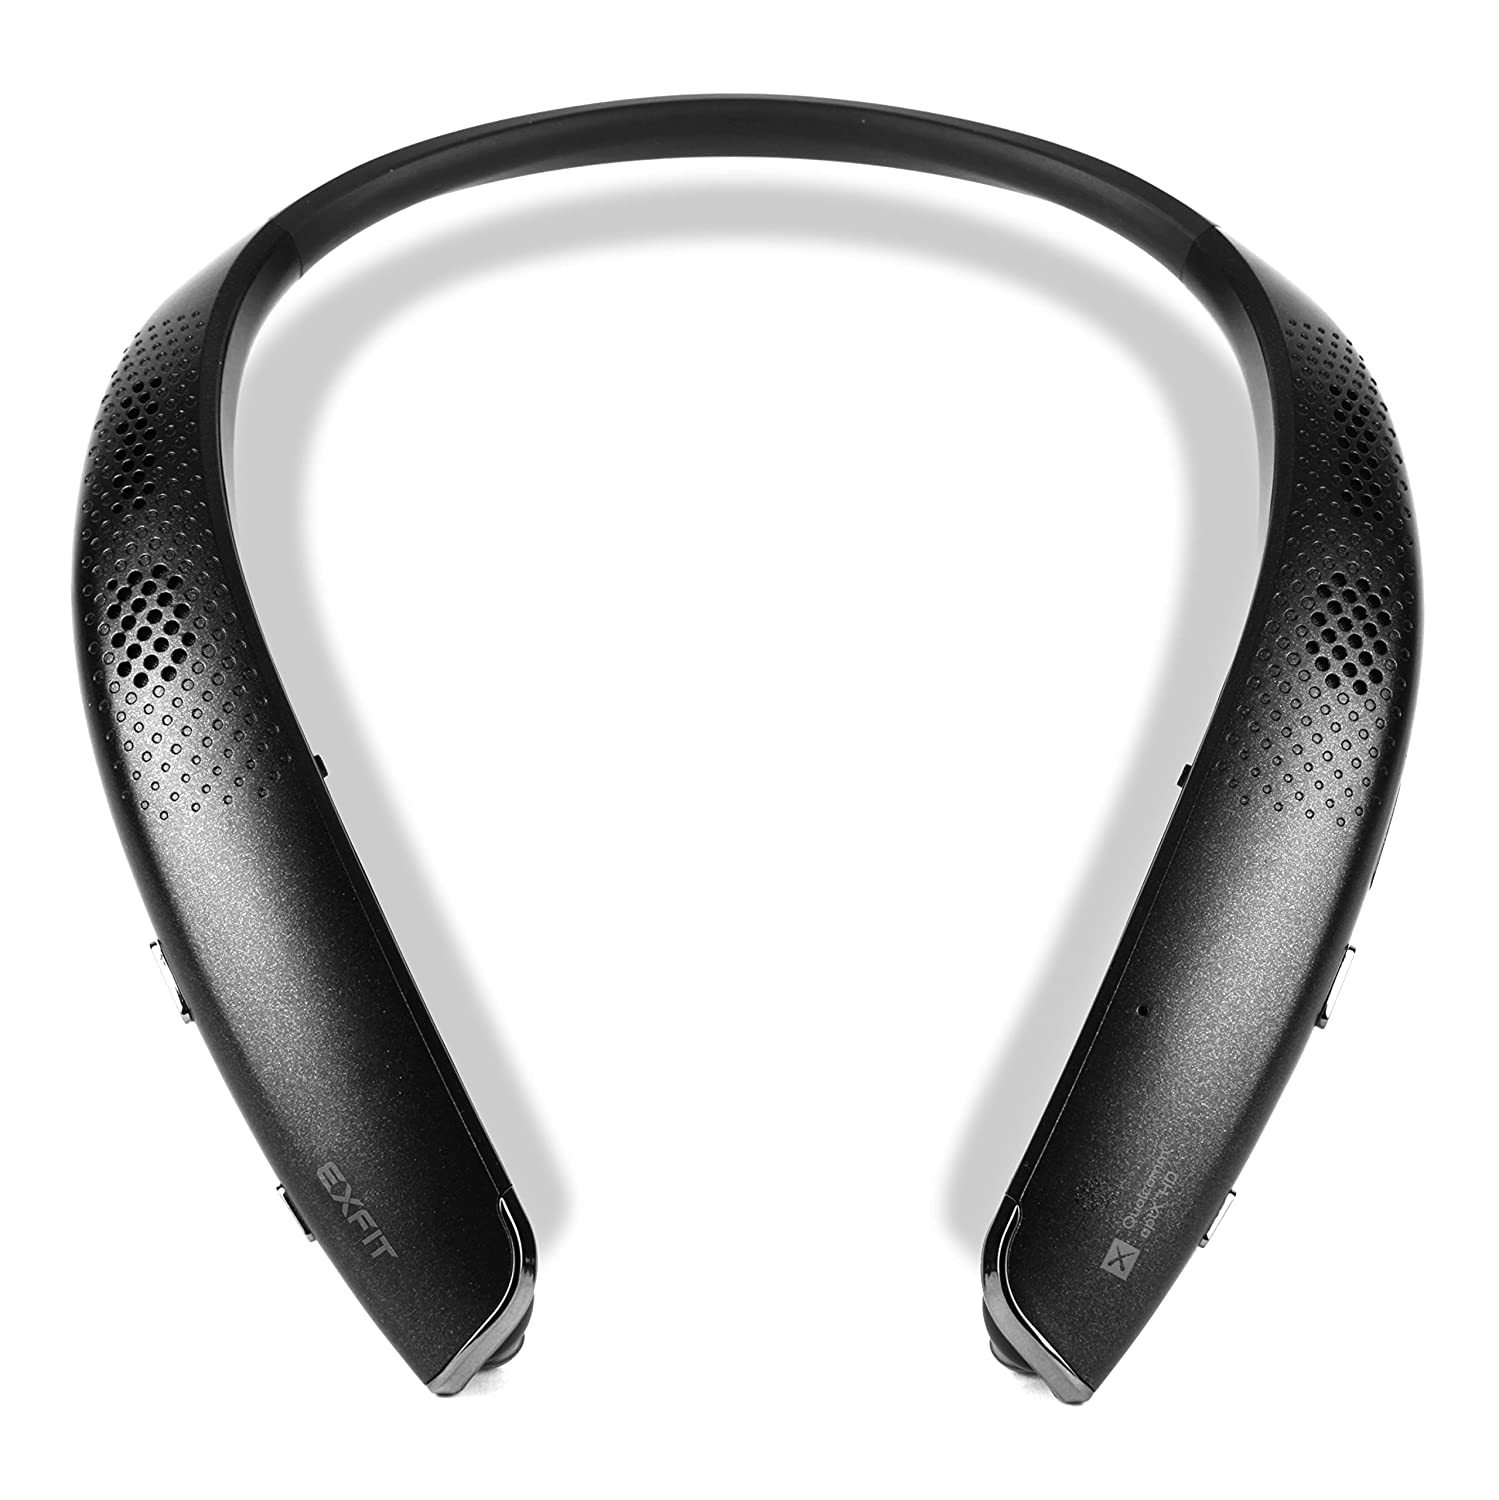 EXFIT BCS-S1000 Wireless Bluetooth Headphones, Surround Sound External  Speakers, Retractable Earbuds, Siri and Google Assistant Compatible, 25  Hour